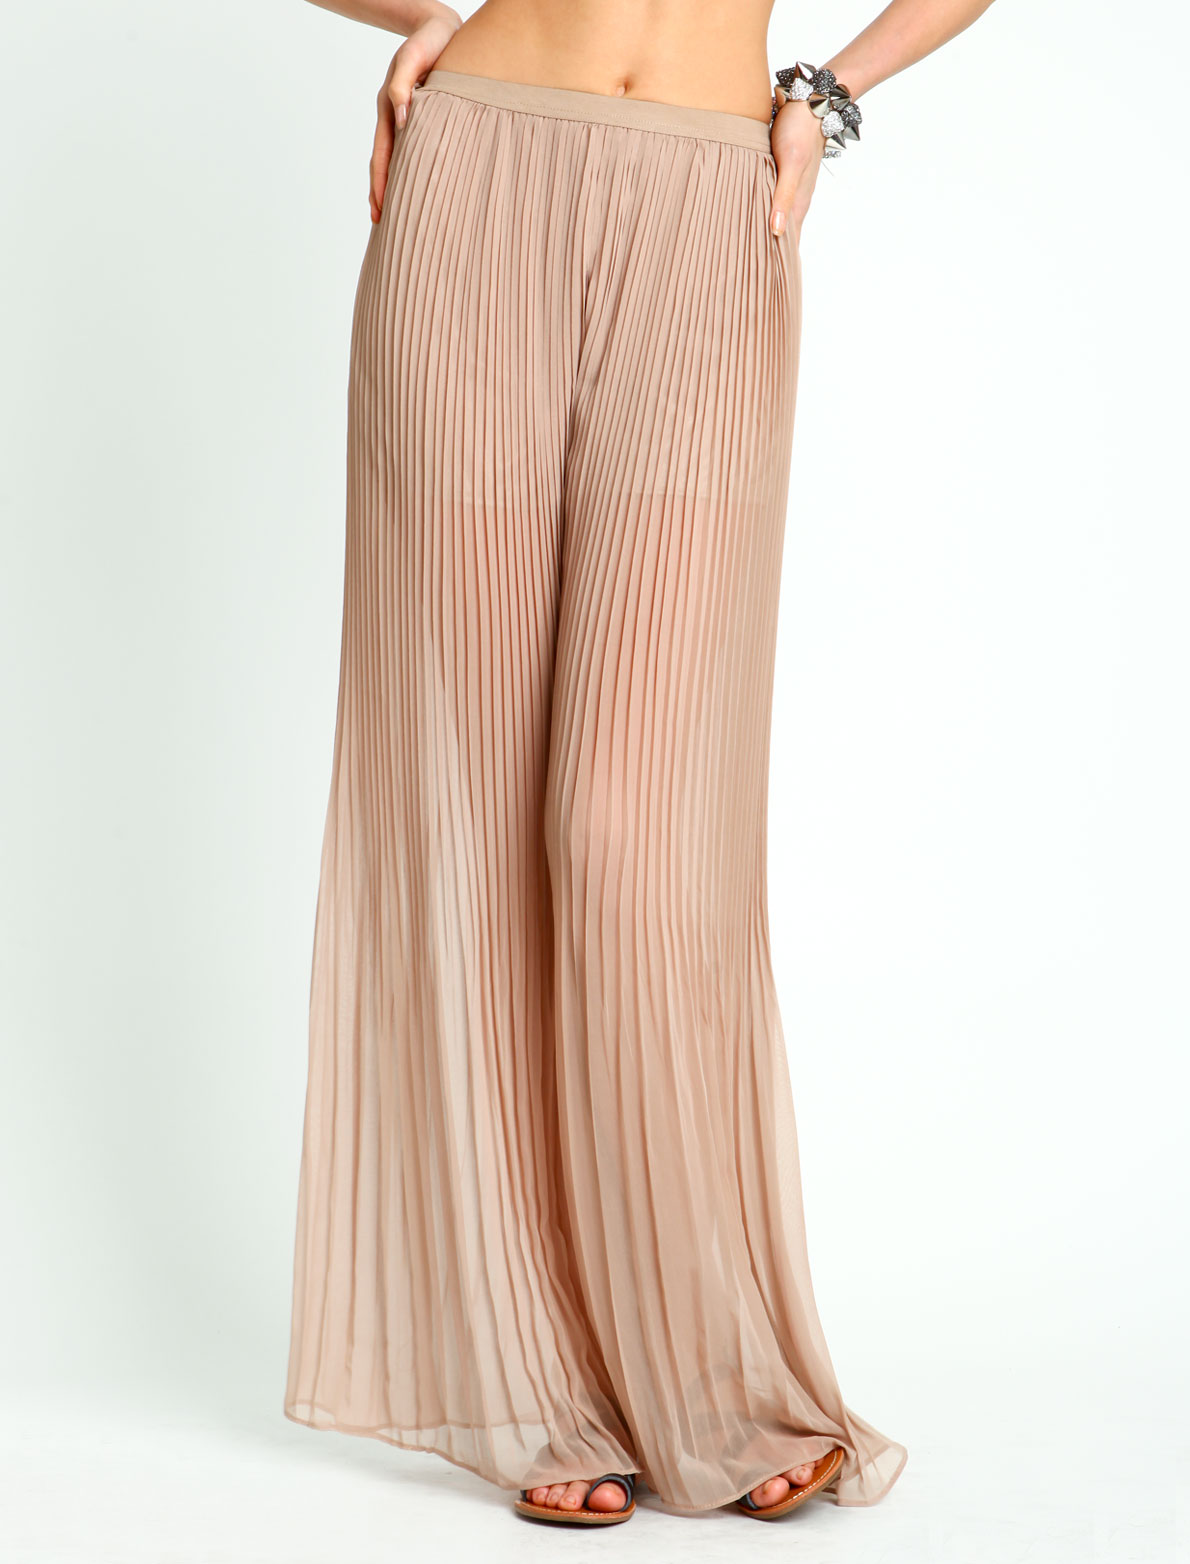 sheer pants women s submited images